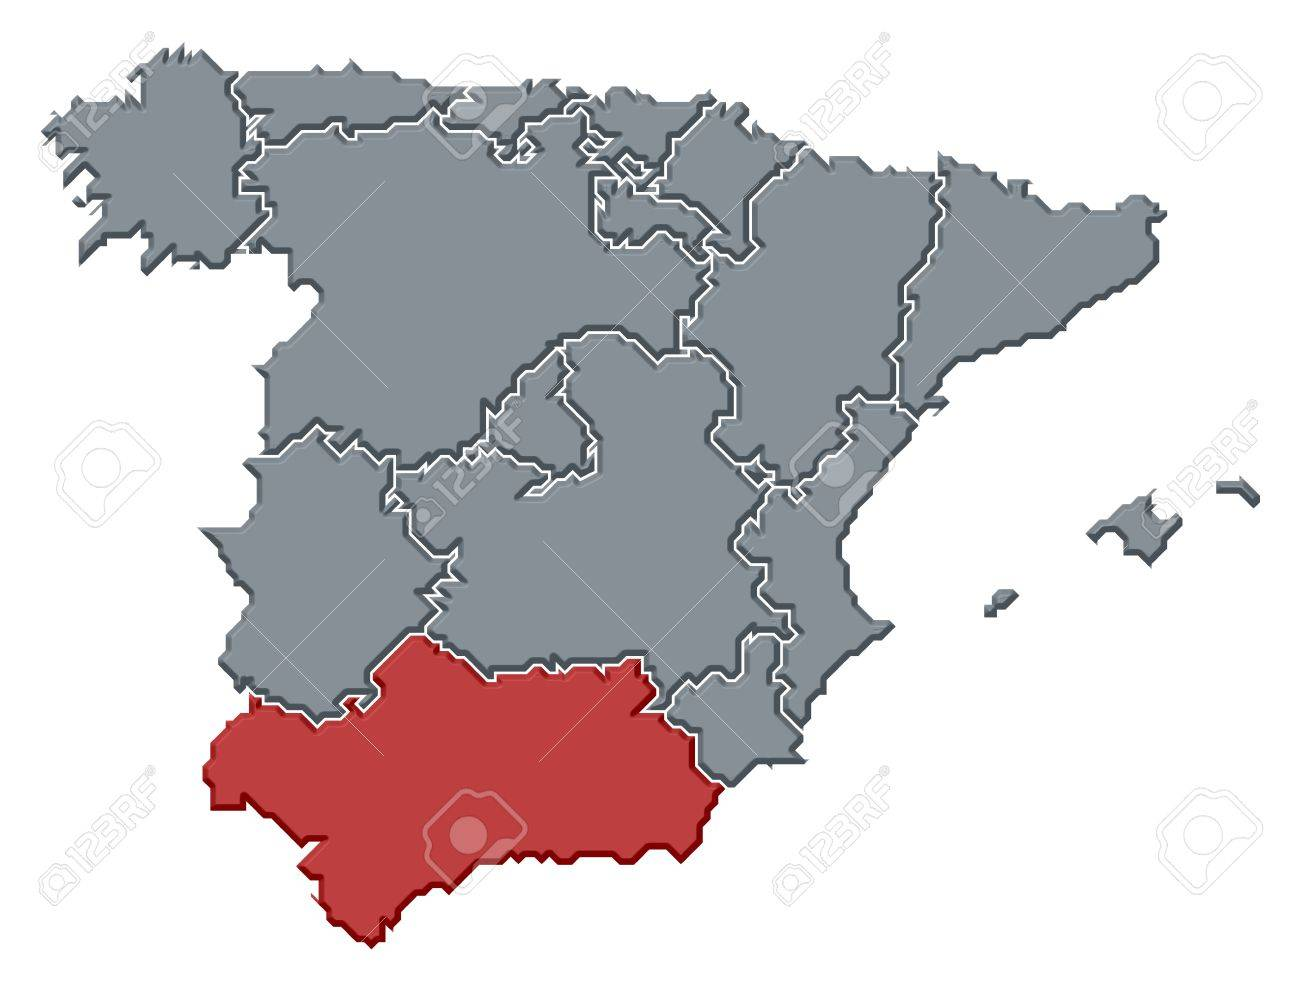 Political Map Of Spain With The Several Regions Where Andalusia - Andalusia map